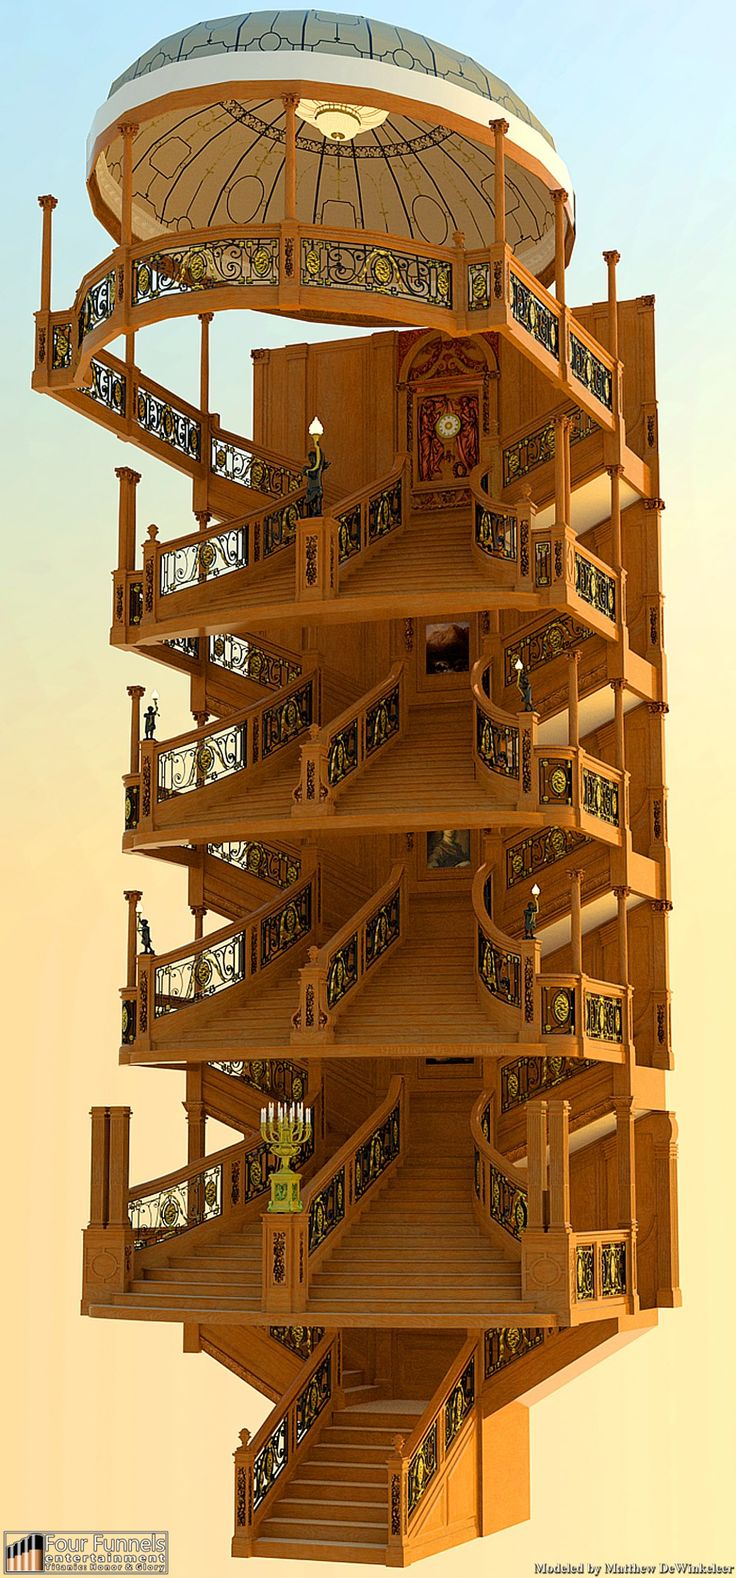 Levels of the grand  staircase